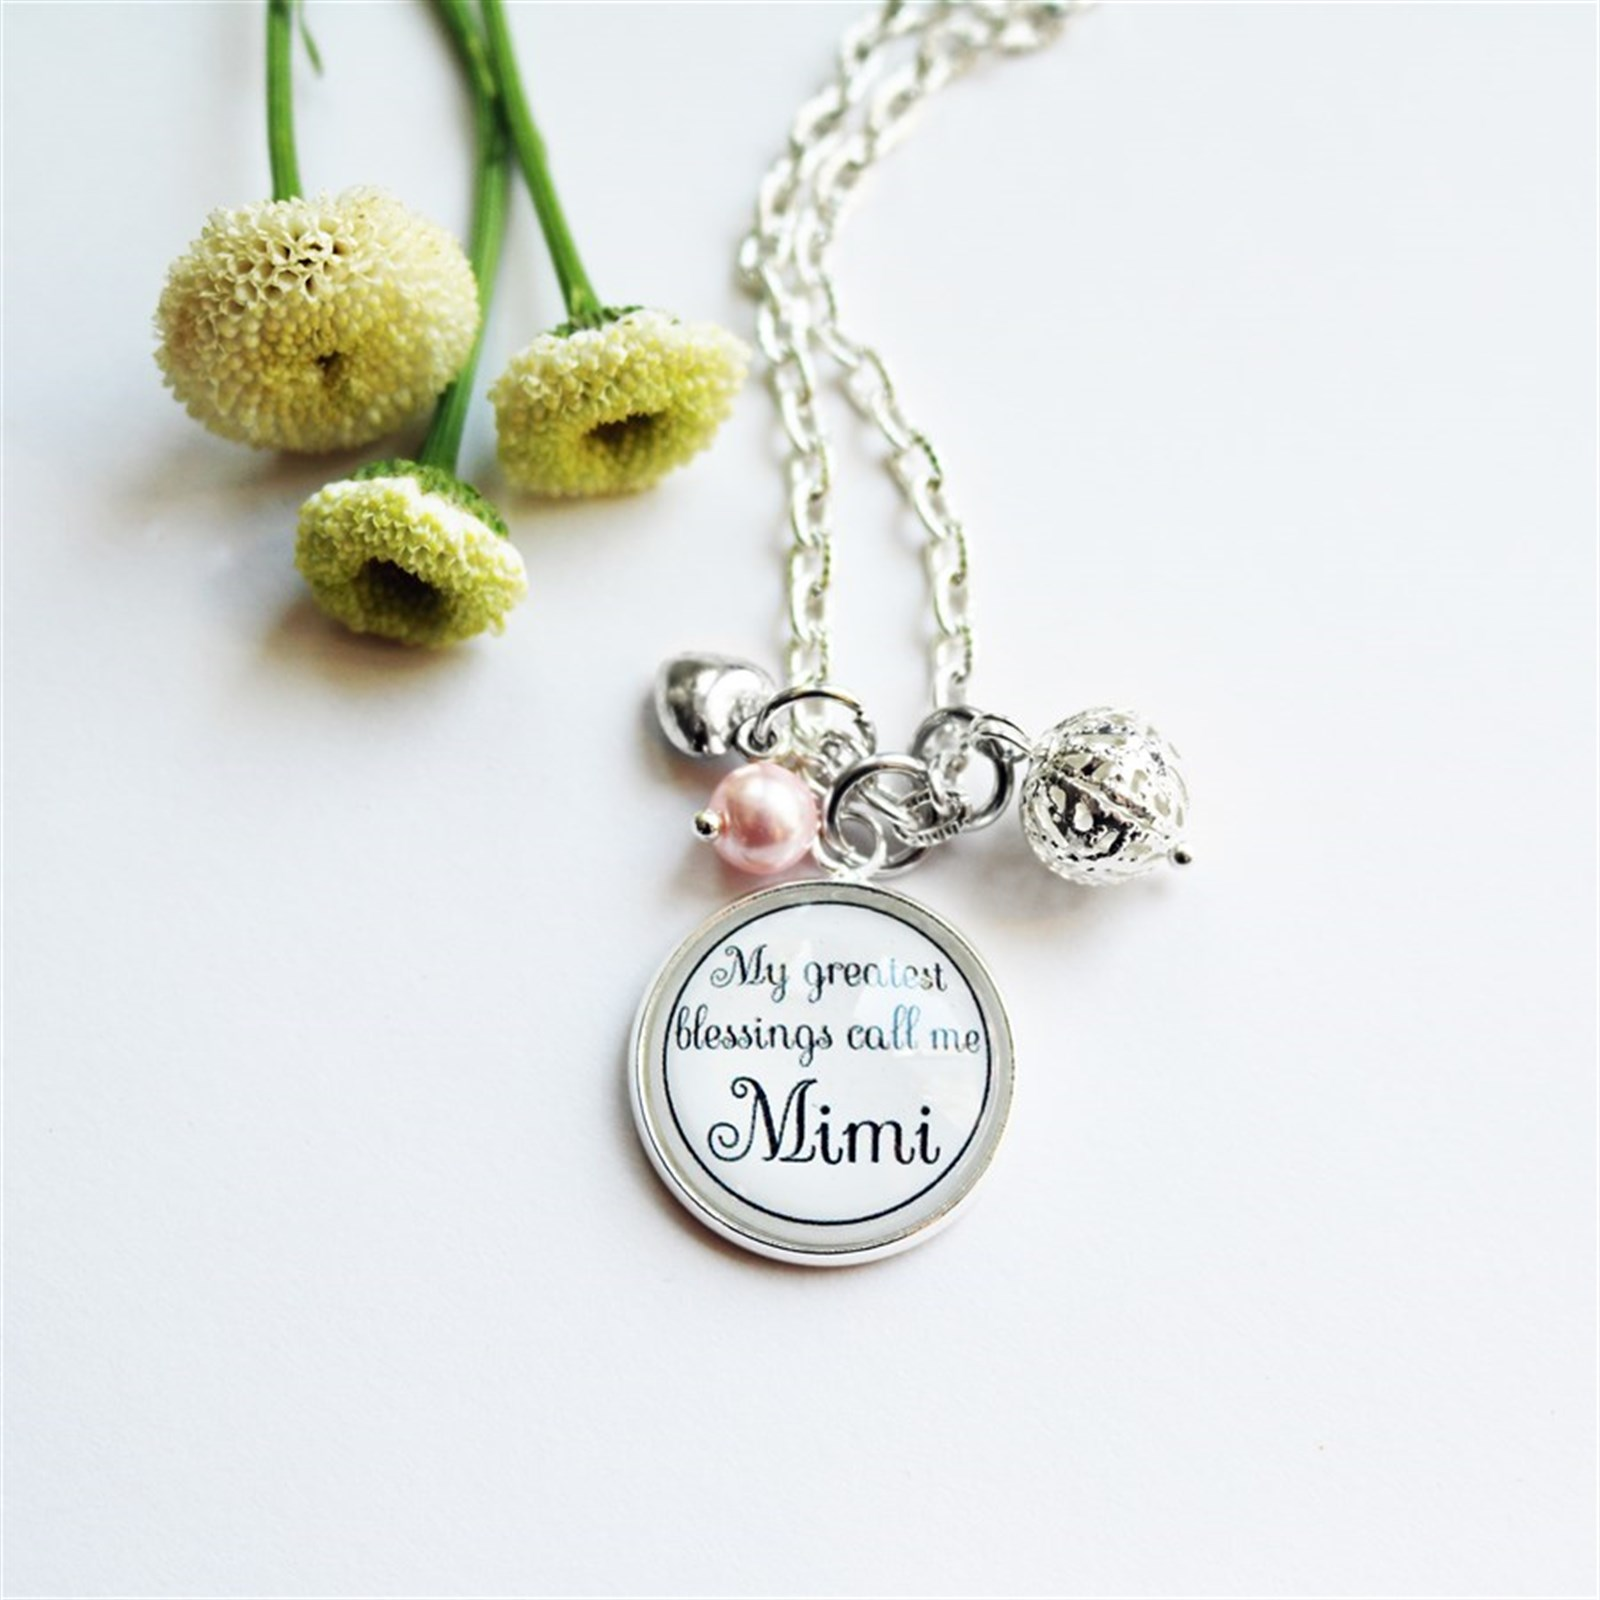 My Greatest Blessings Necklace Only $8.99 w/ Free Shipping